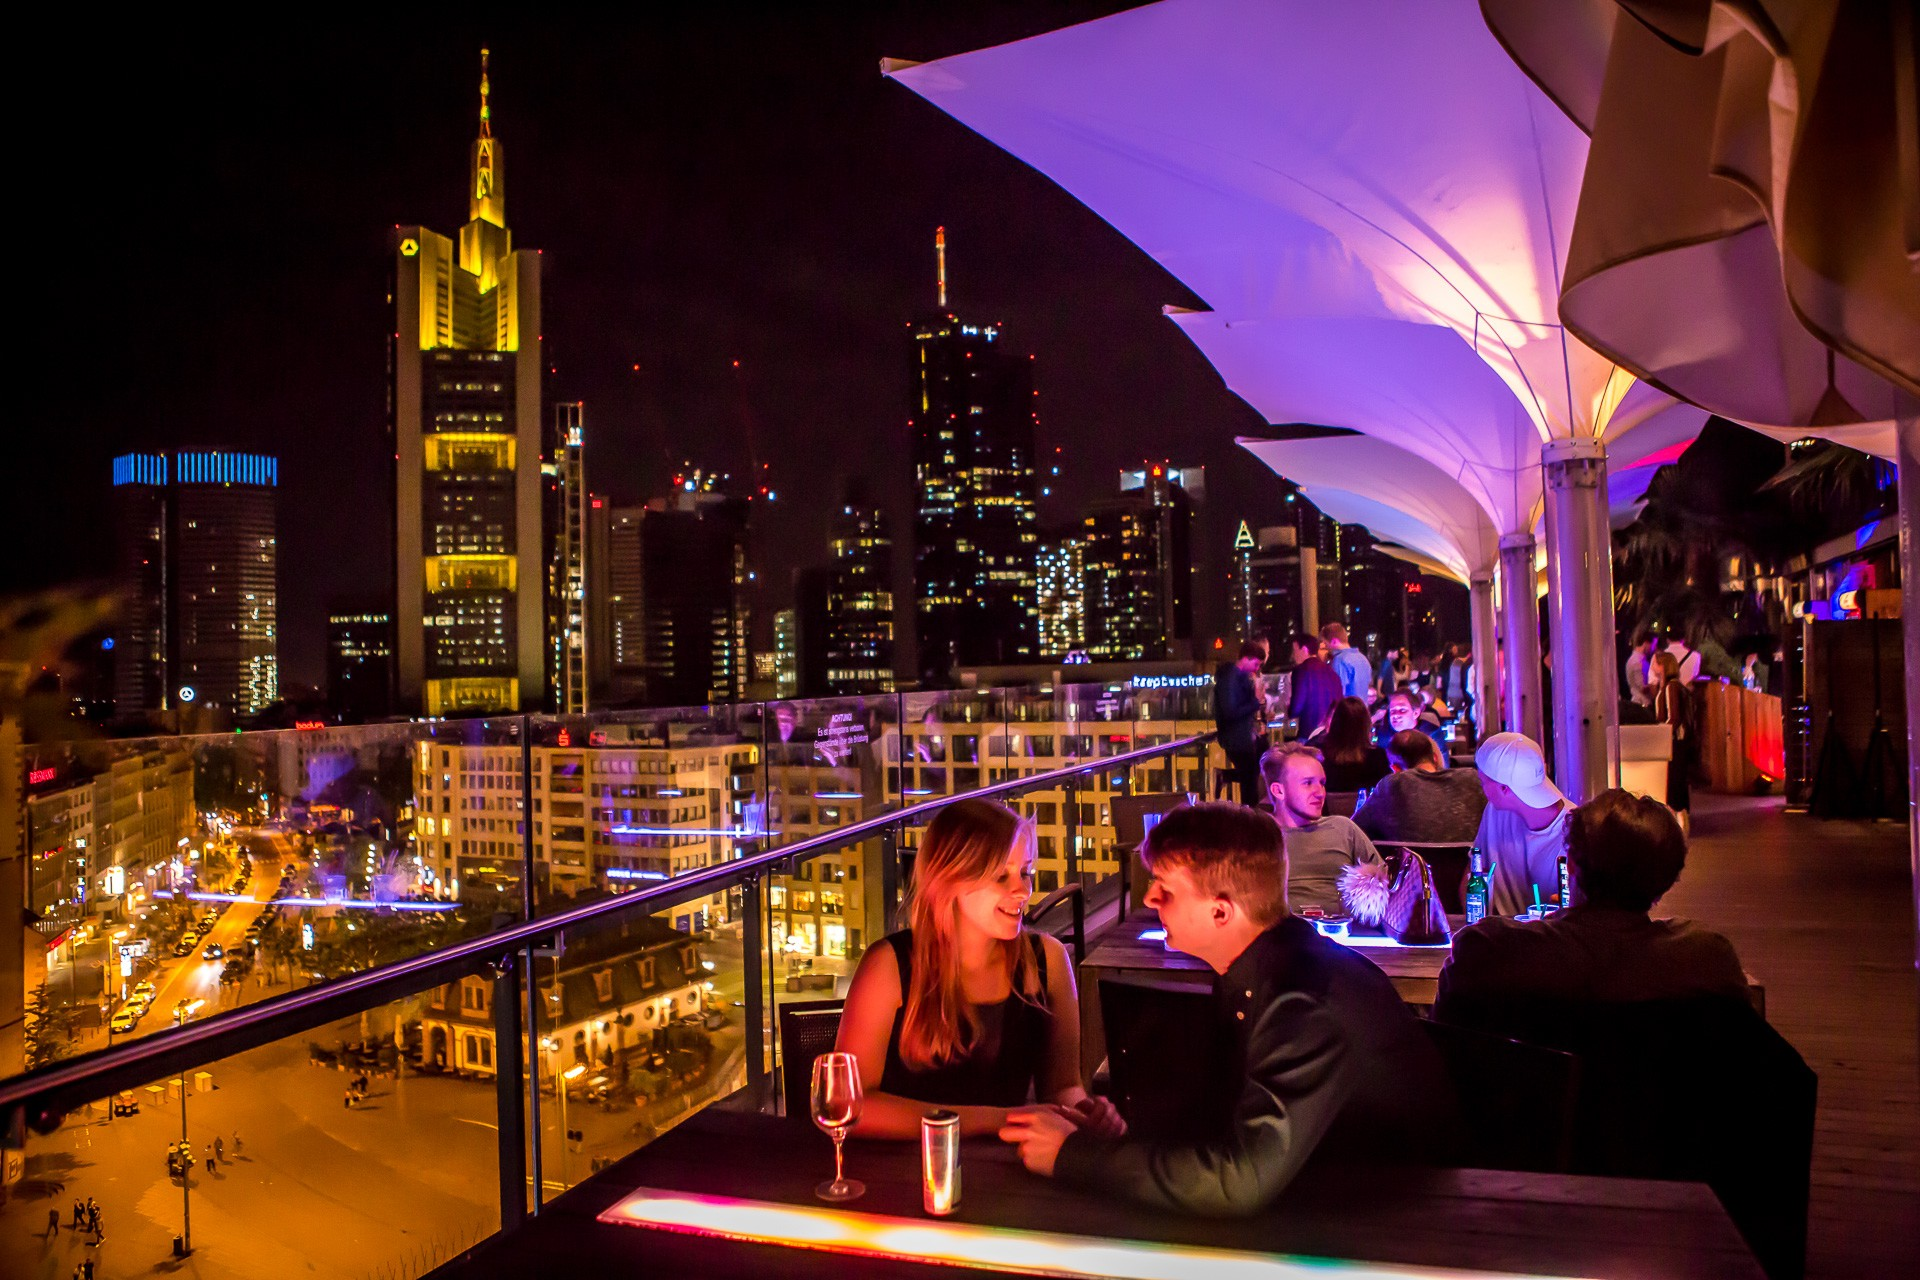 04.08.2018 - 7 - Party with a view, Leonhards Skyline